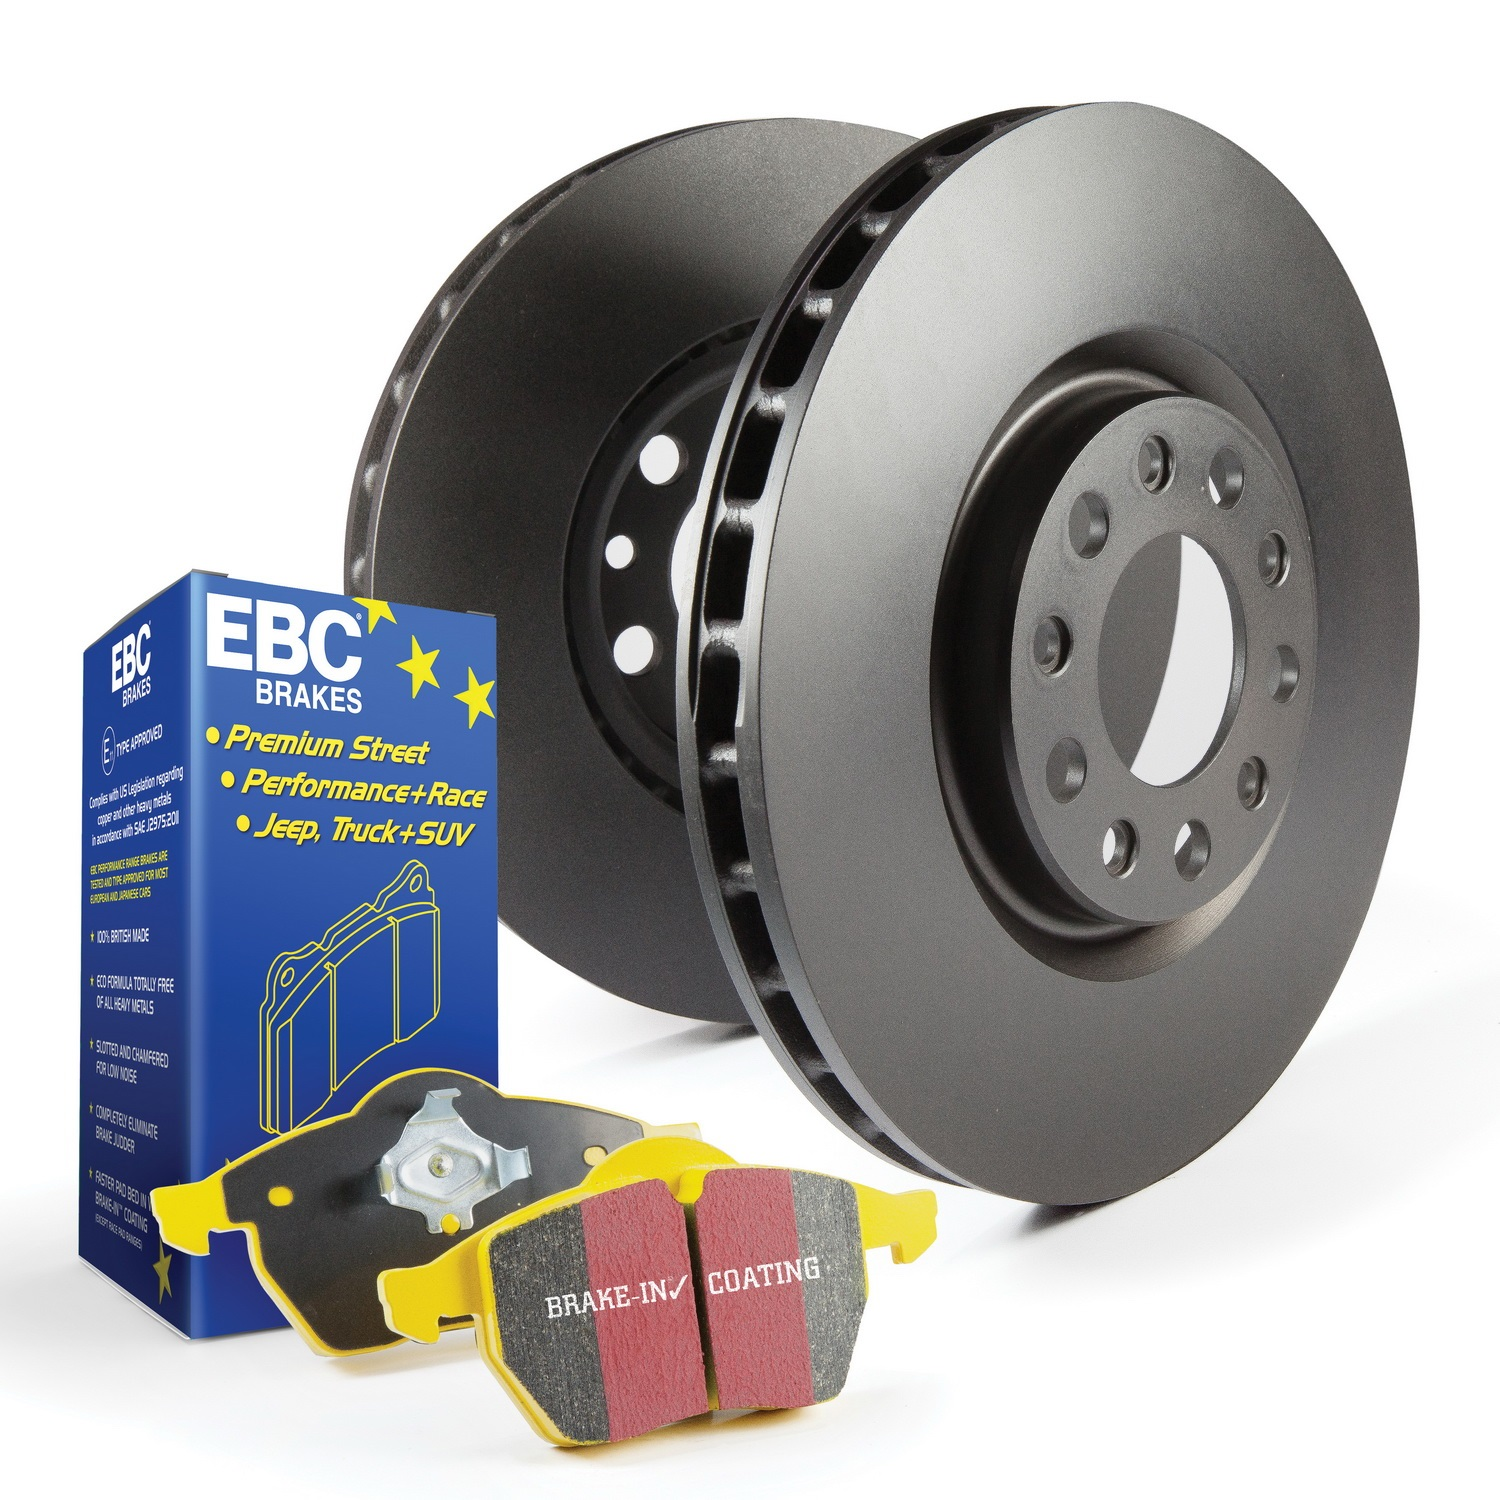 EBC Brakes S13KR1486 - Disc Brake Pad and Rotor Kit